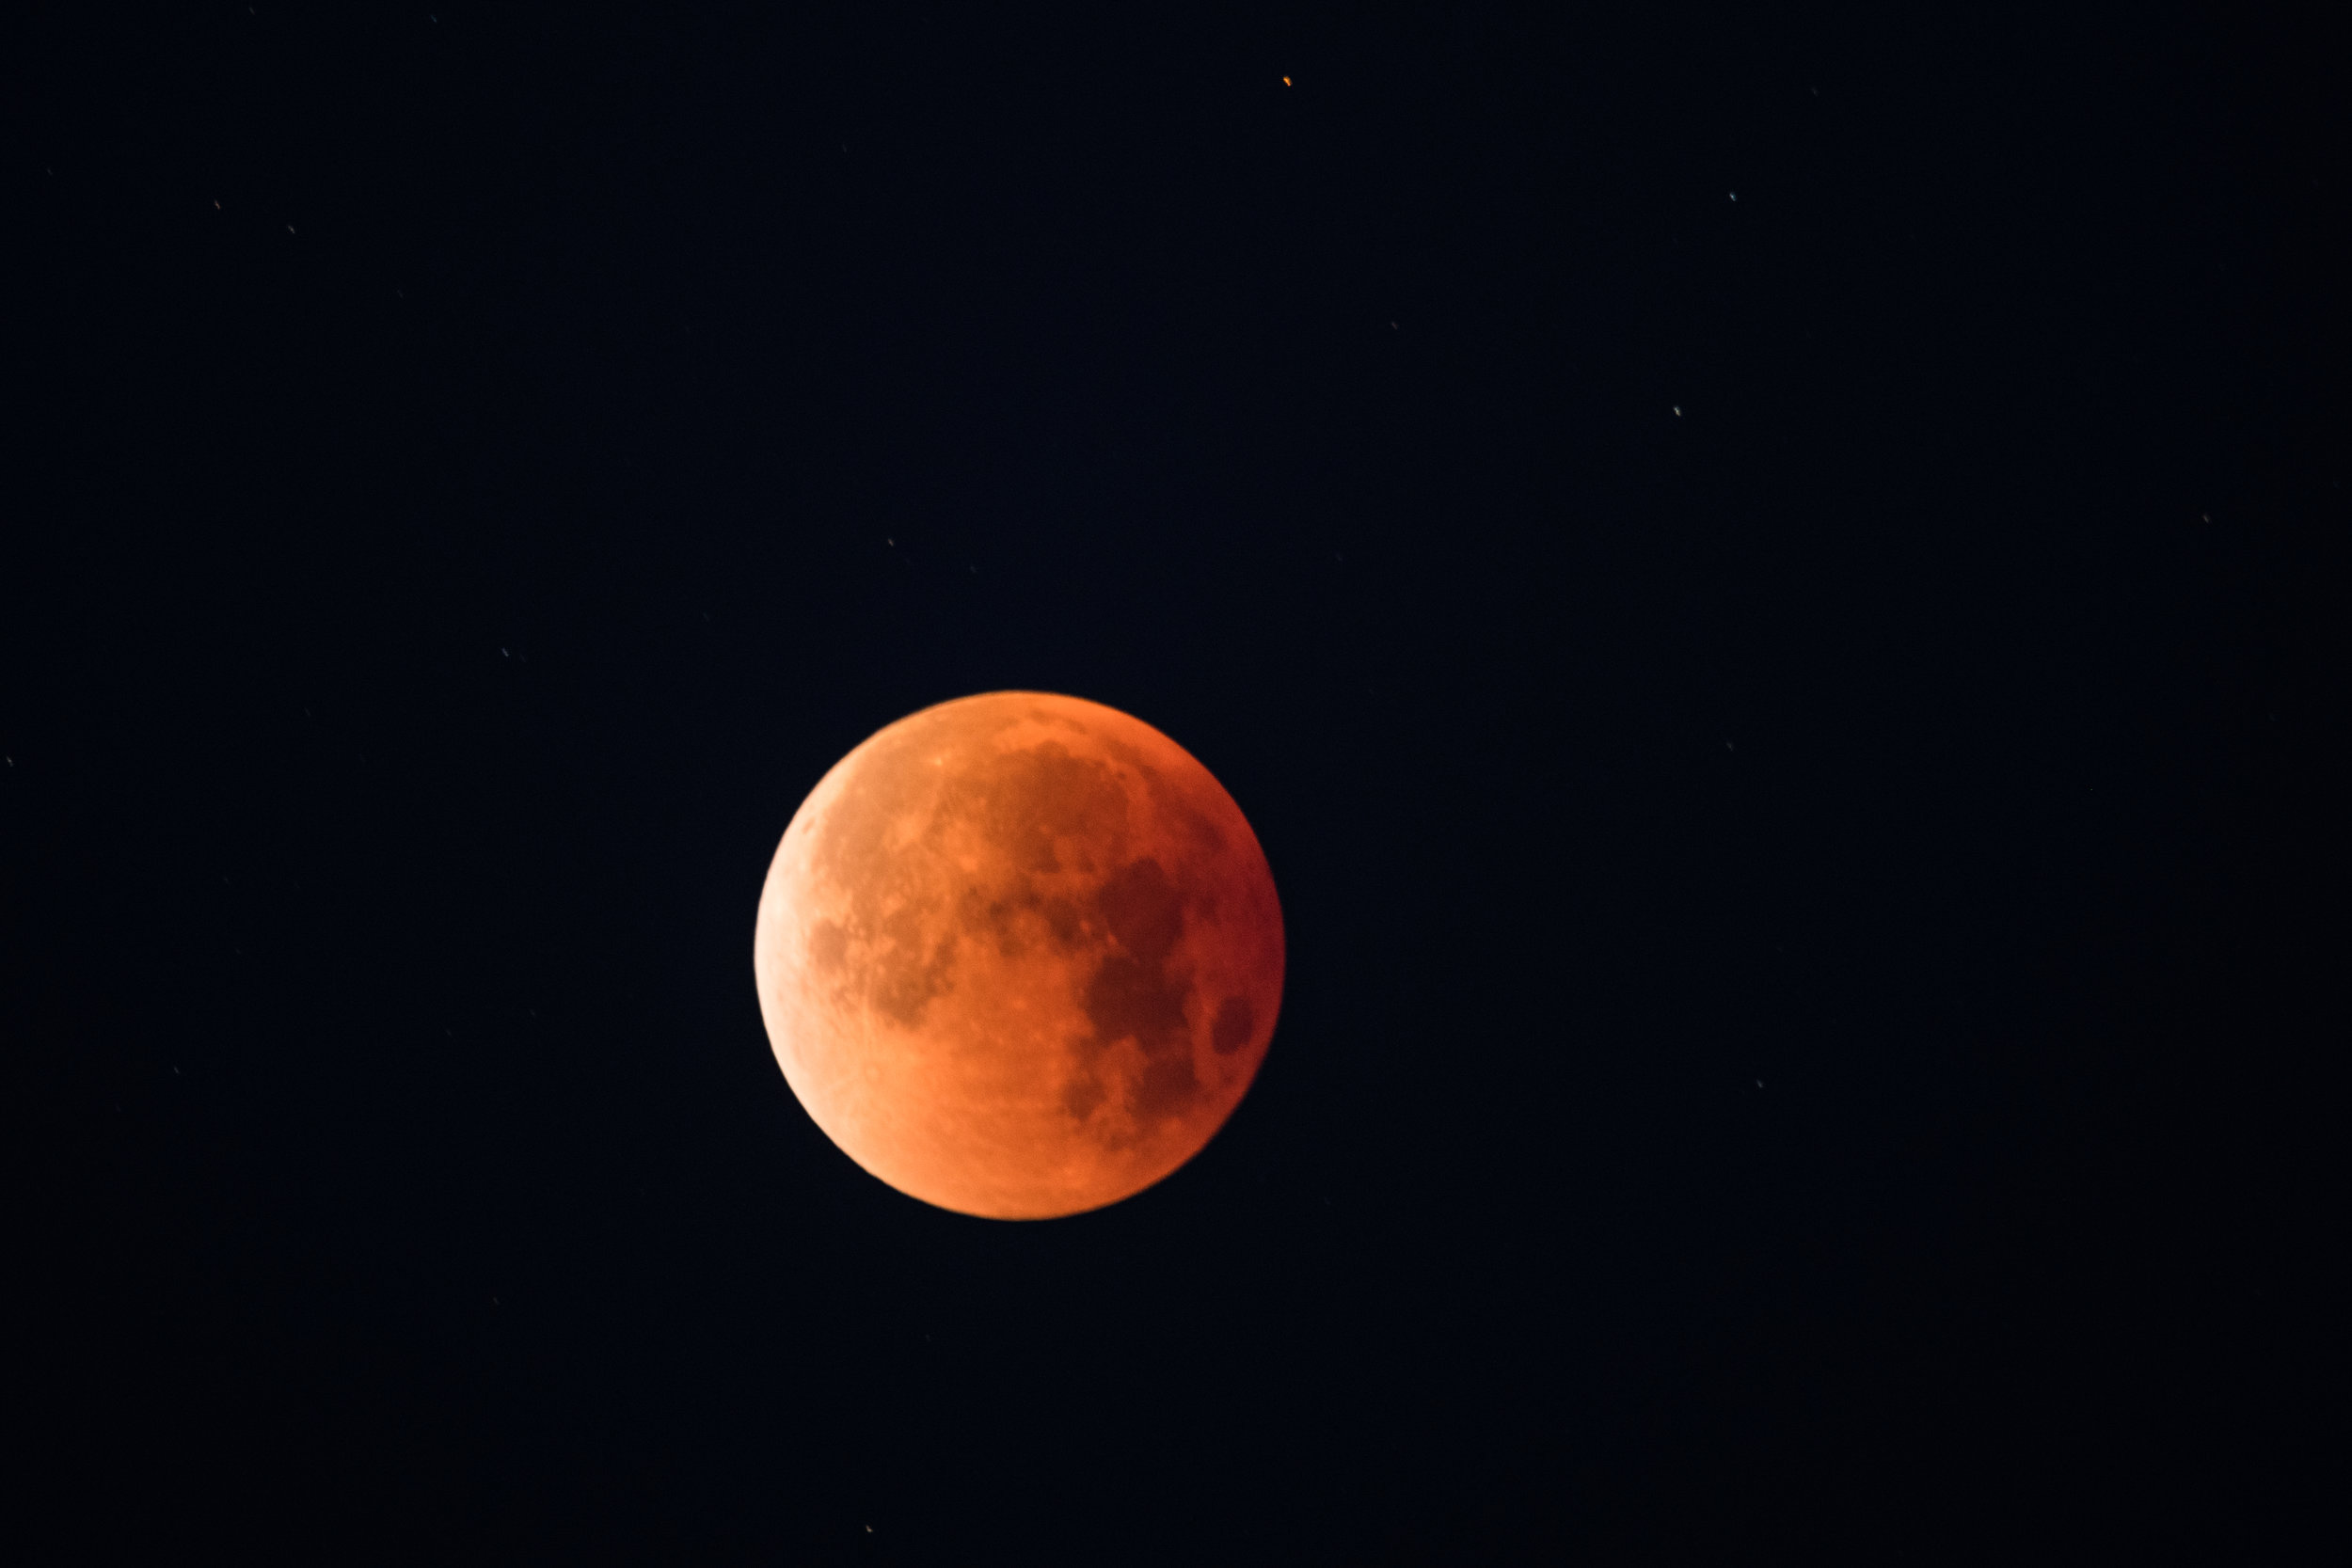 The Blood Moon during the early hours of the Lunar Eclipse.